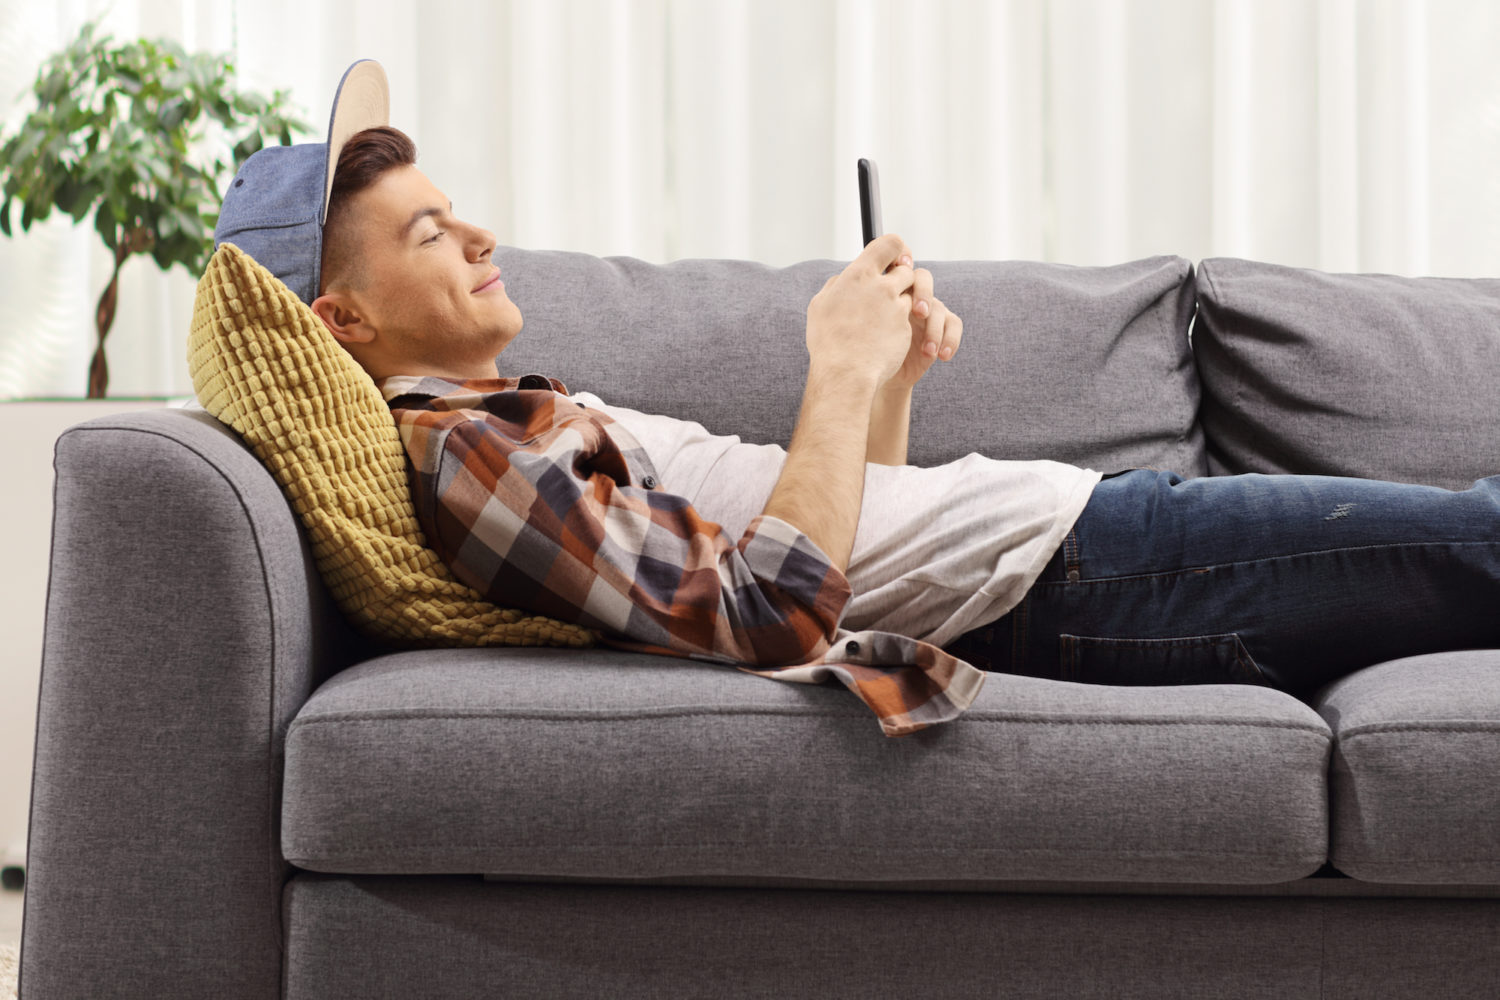 Young guy lying on a sofa and looking at a mobile phone at home